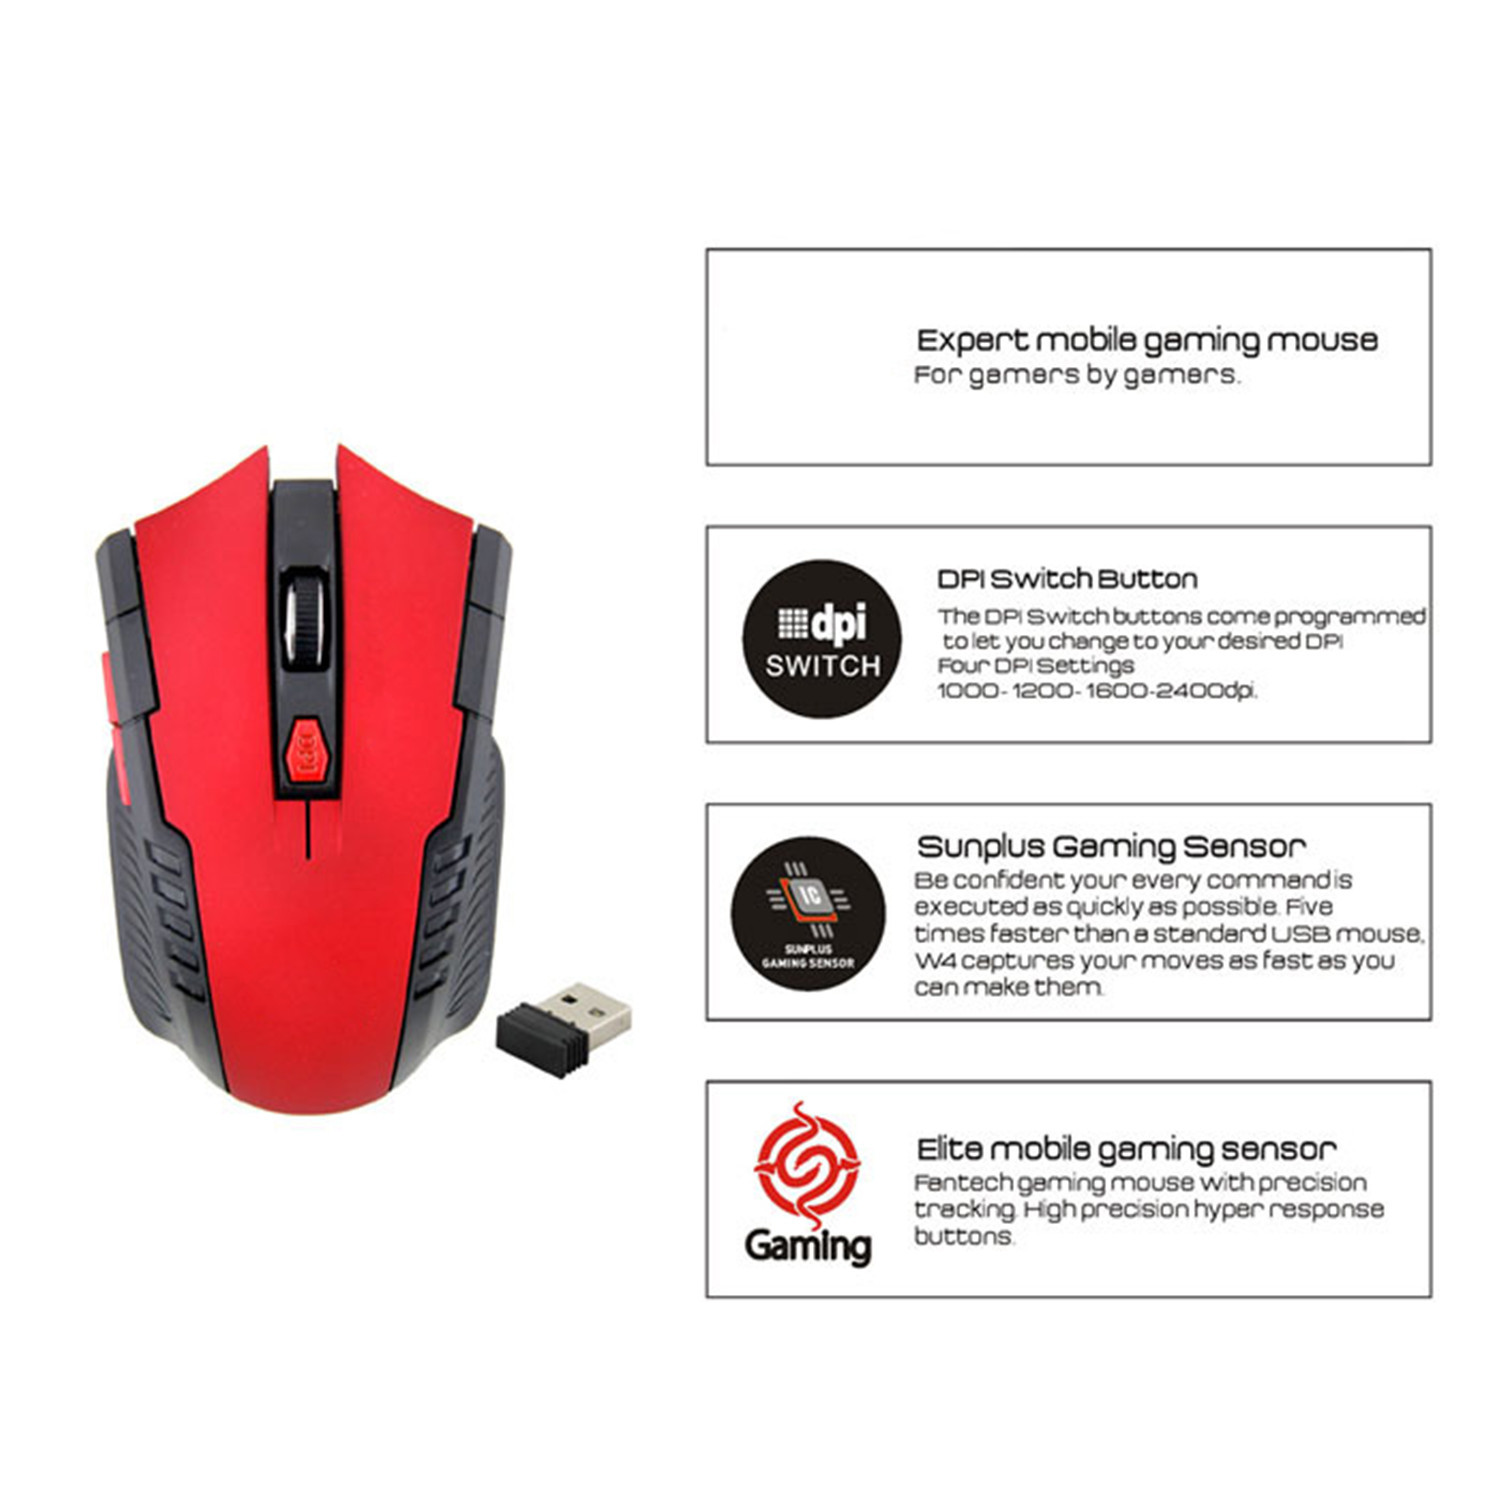 Best 2.4Ghz Mini portable Wireless Optical Gaming Mouse Mice Professional Gamer Mouse For PC Laptop Desktop New Hot Worldwide